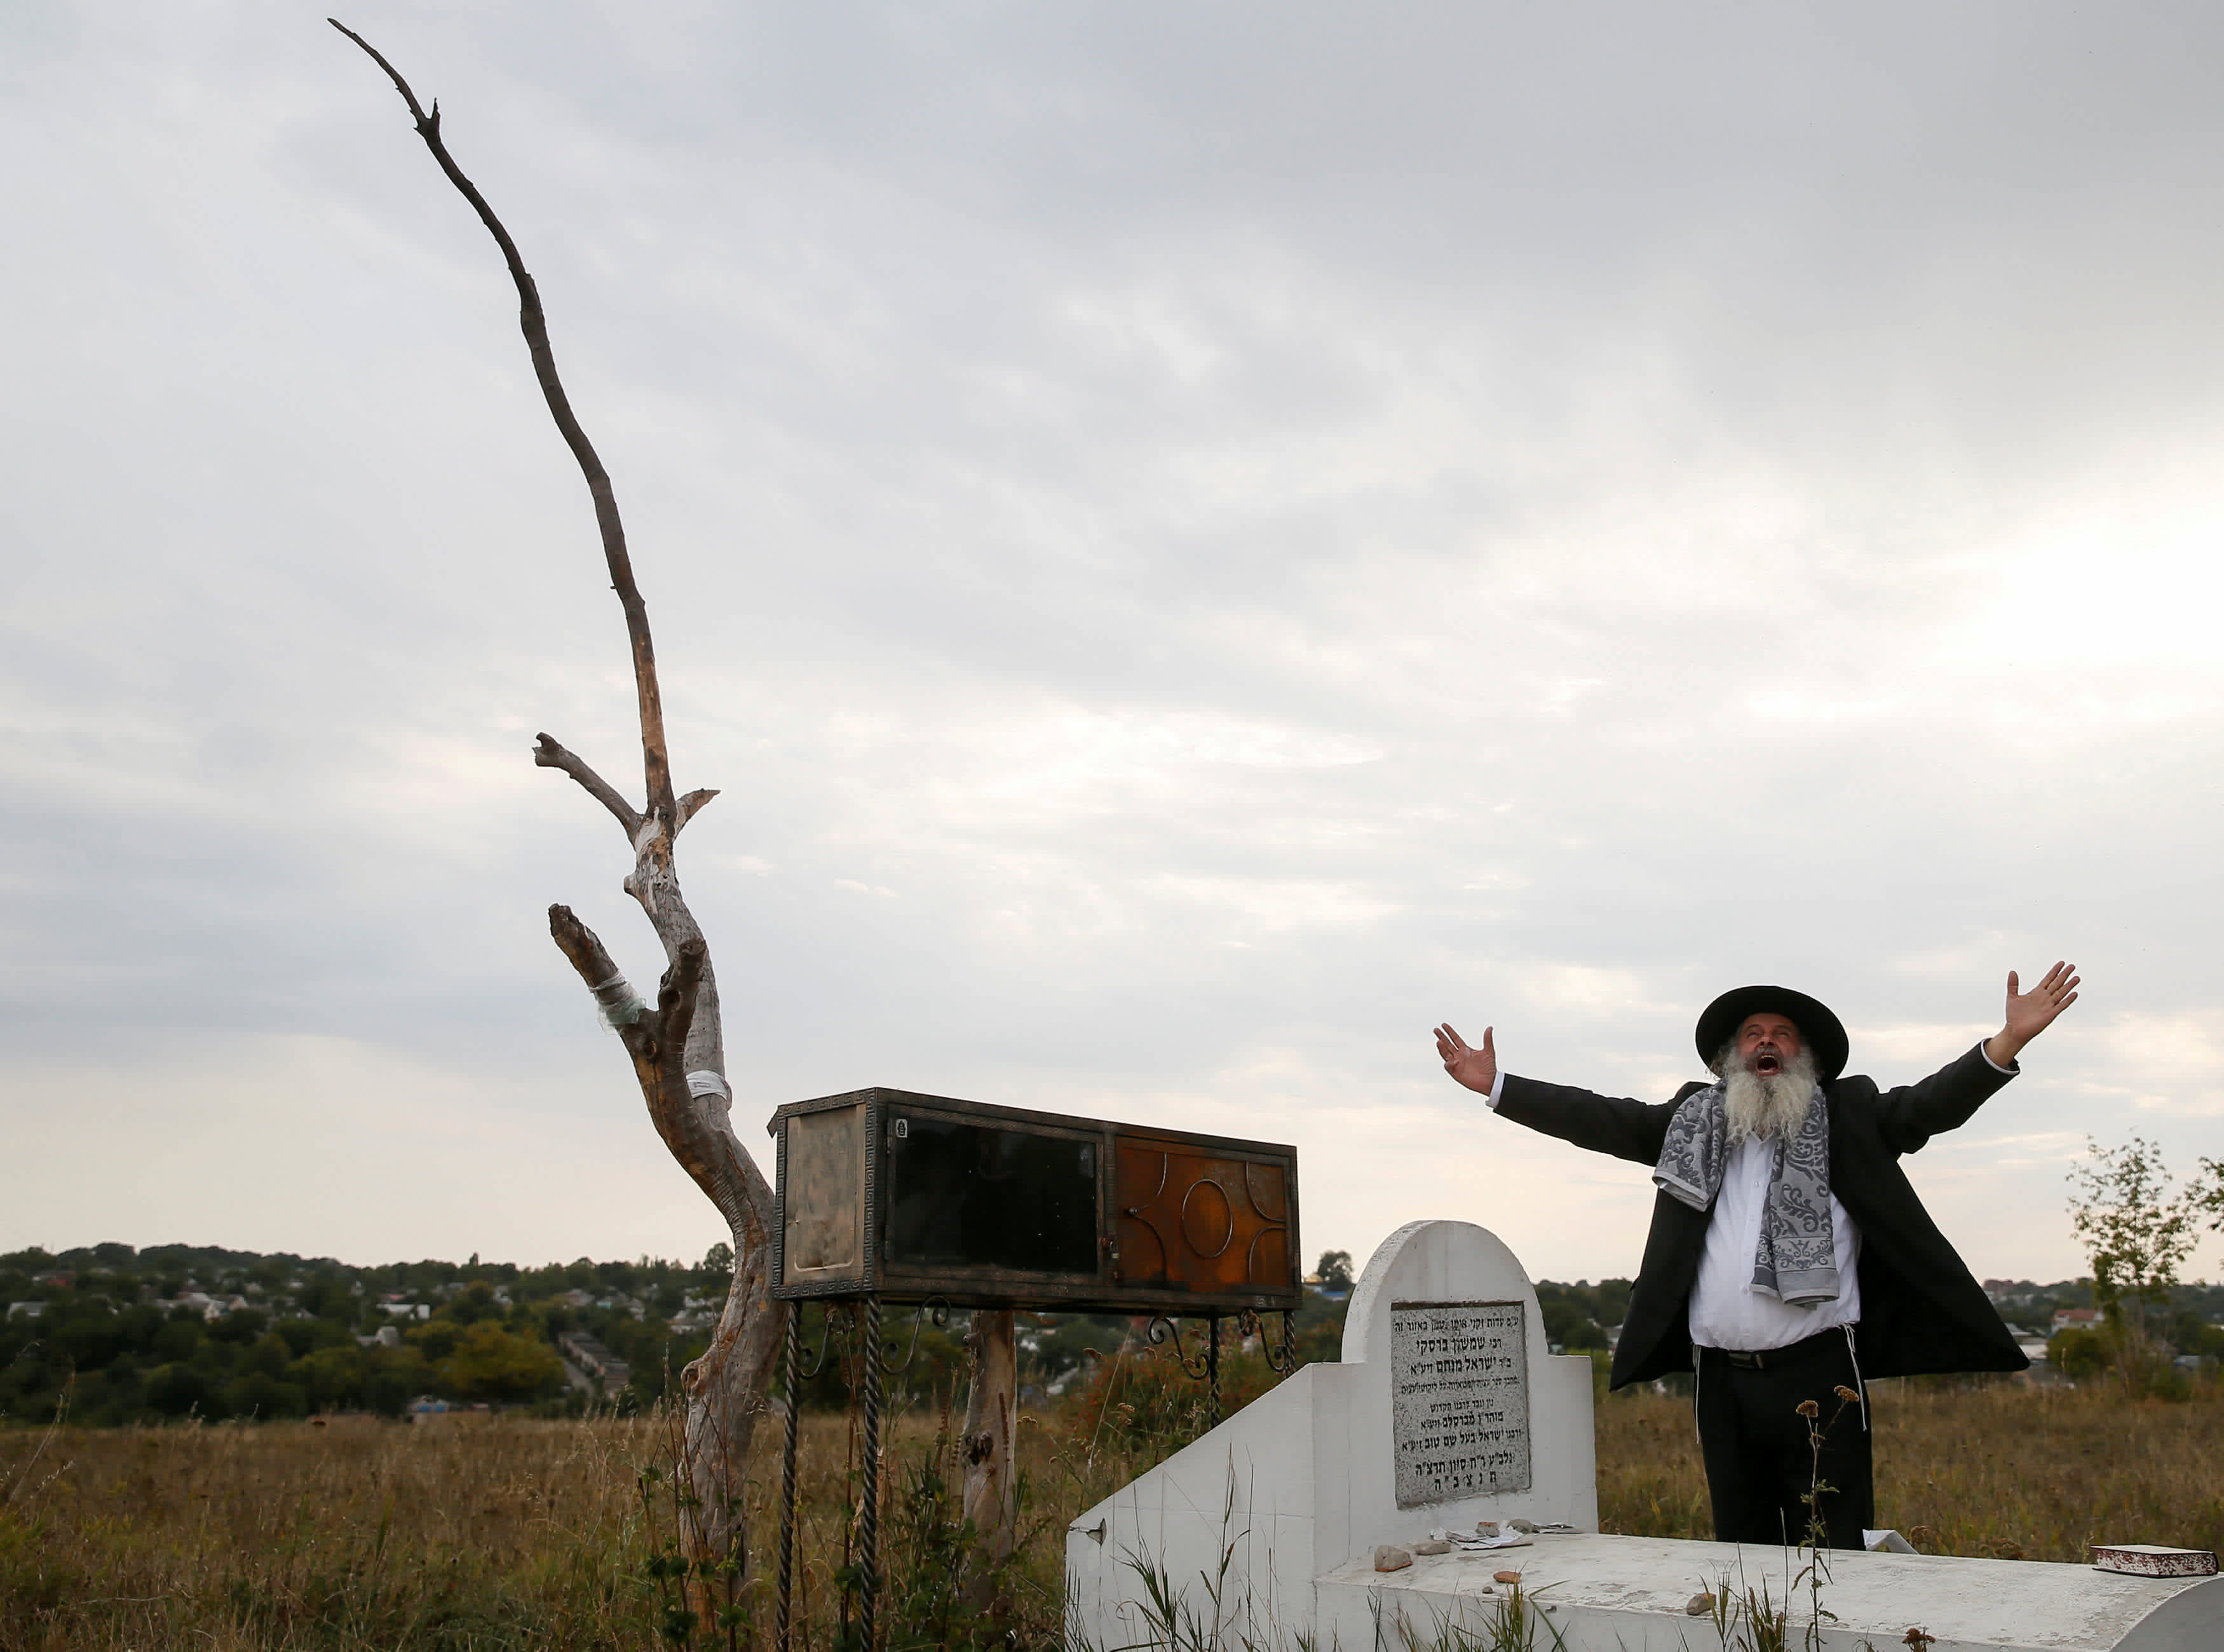 An ultra-Orthodox Jewish pilgrim prays next to a tomb at an old Jewish cemetery on the eve of Rosh Hashana holiday, the Jewish New Year, in the town of Uman, Ukraine September 19, 2017. (Reuters)